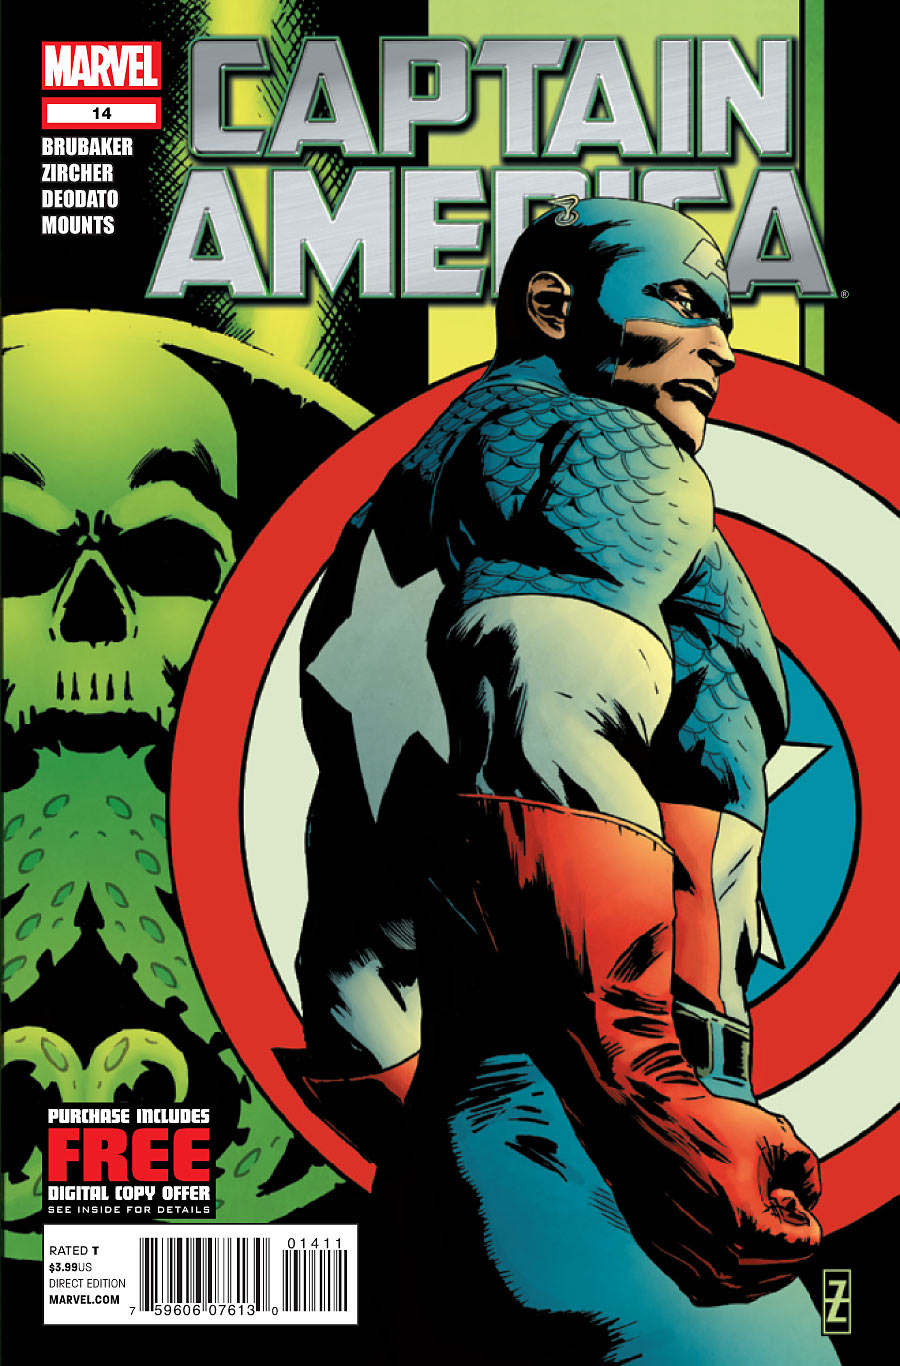 http://img4.wikia.nocookie.net/__cb20120706050808/marveldatabase/images/2/2a/Captain_America_Vol_6_14.jpg